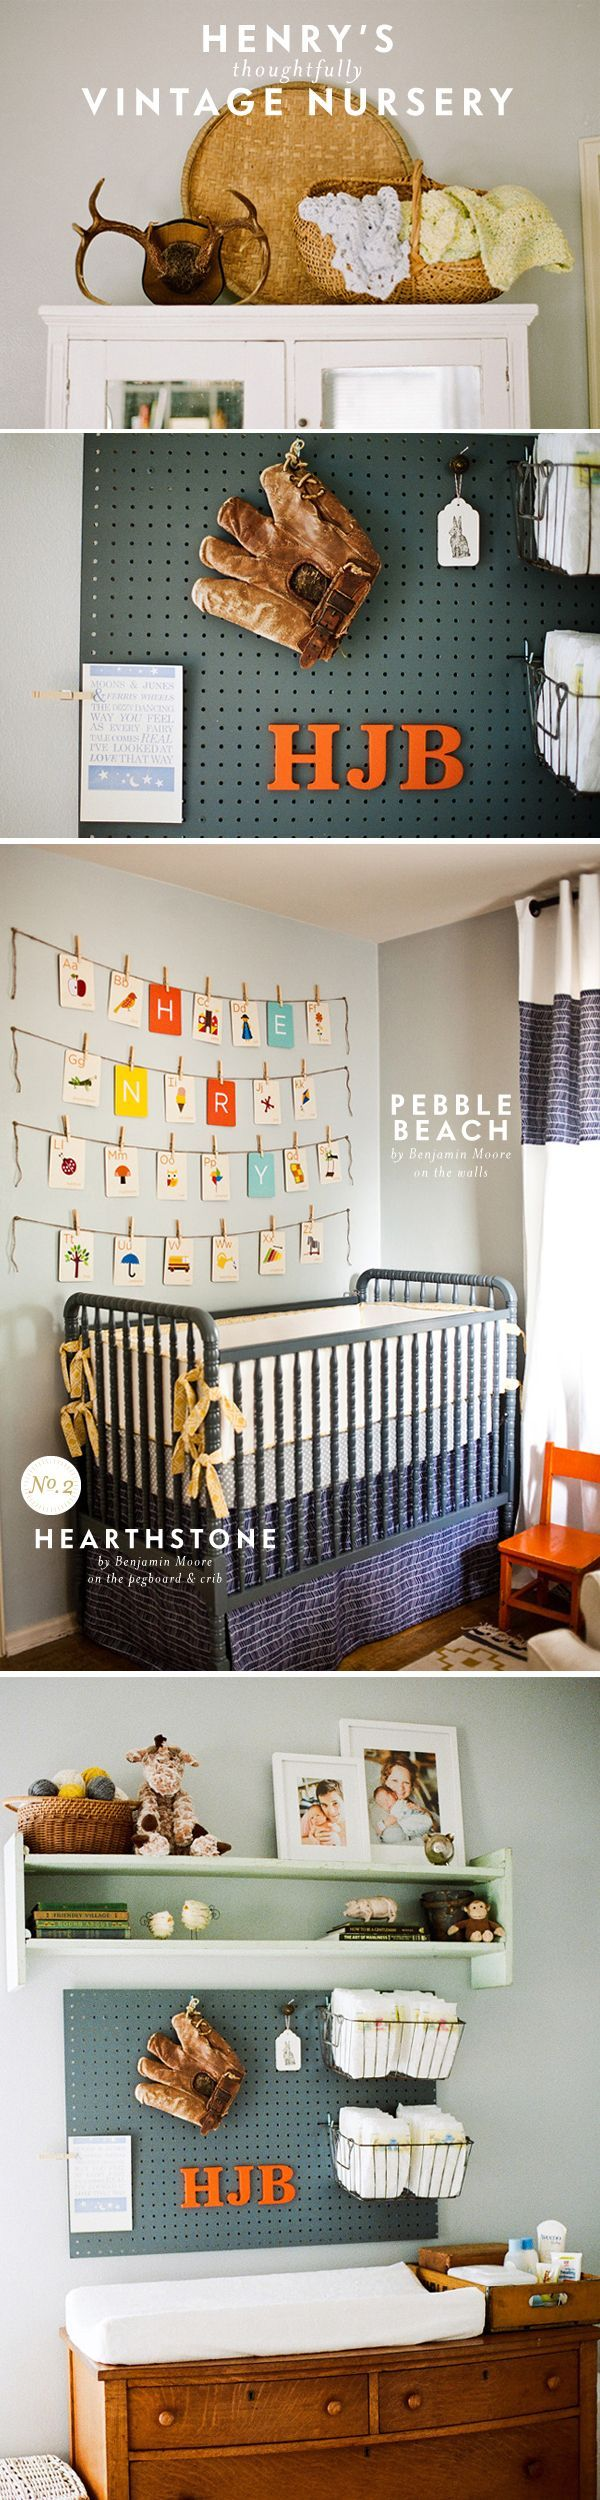 Our alphabet cards in Henry's vintage baby nursery.